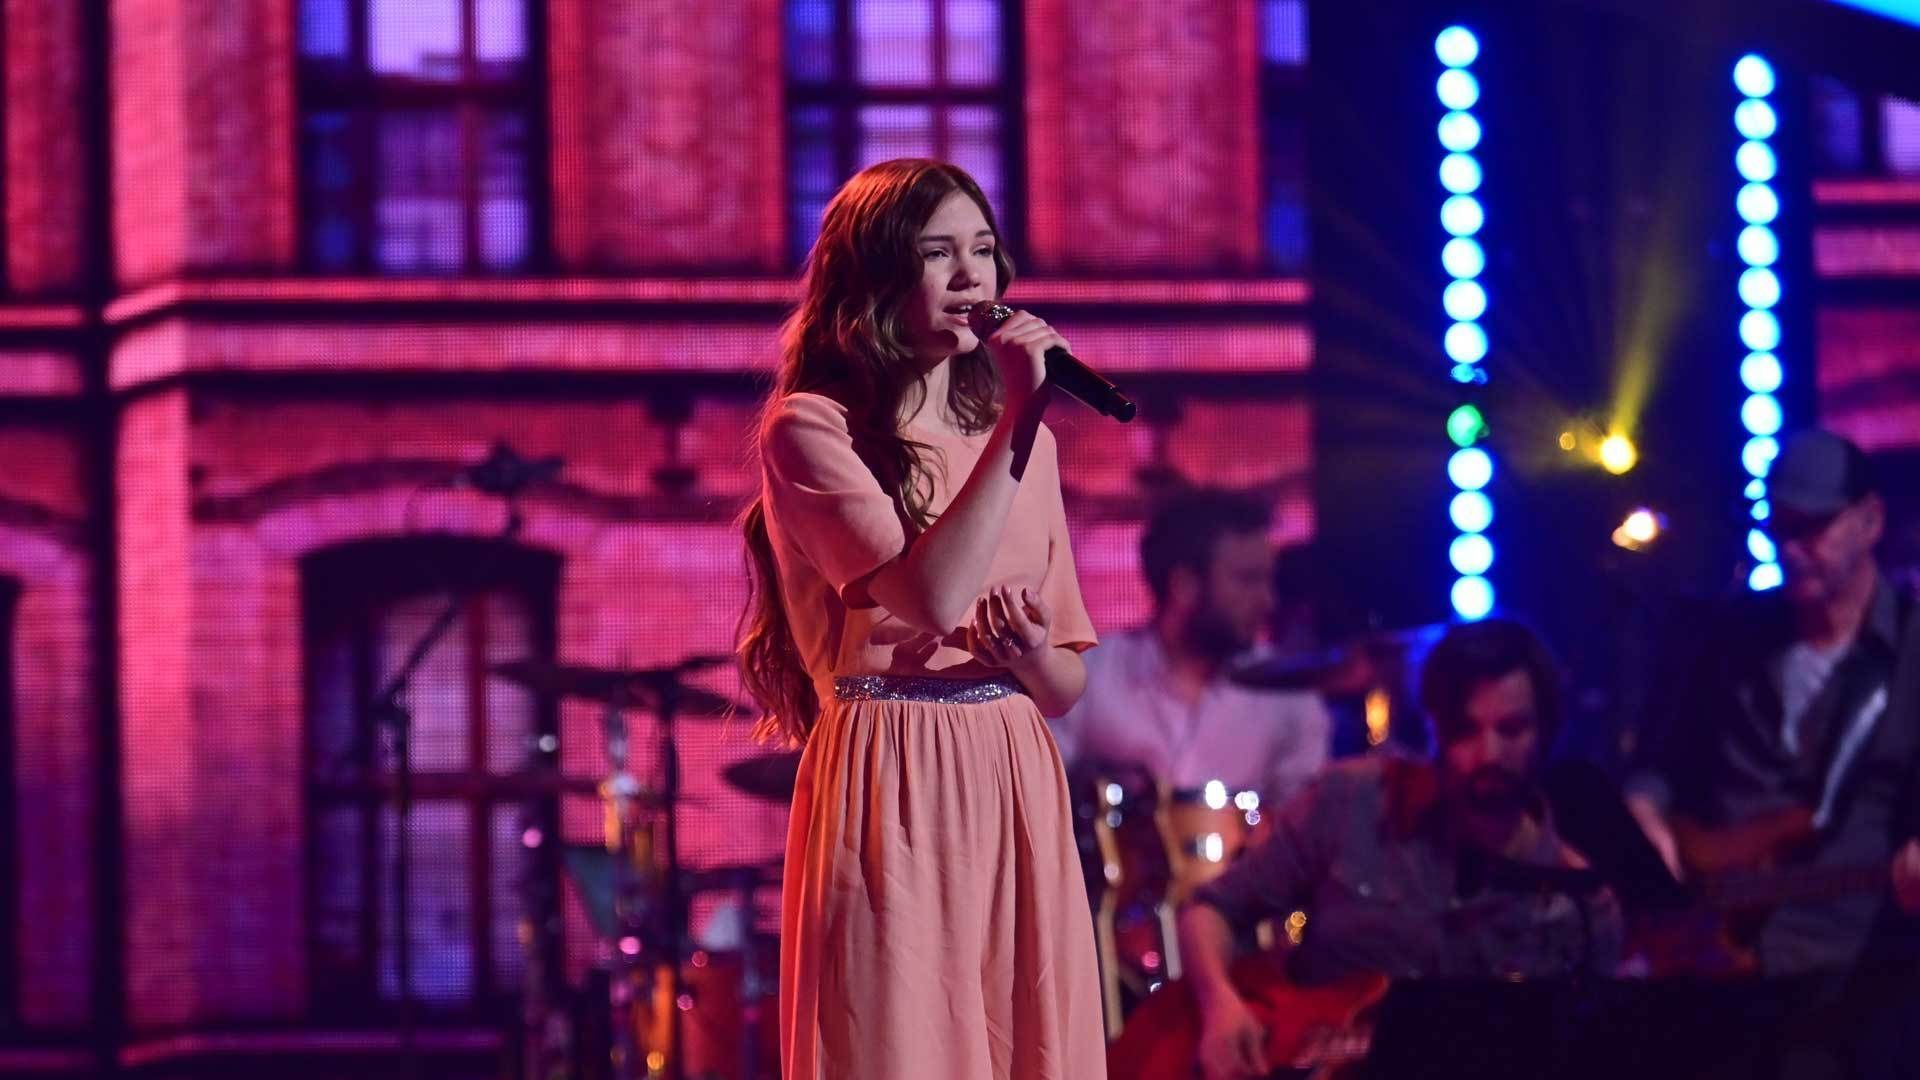 Emily - I'M With You || The Voice Kids 2021